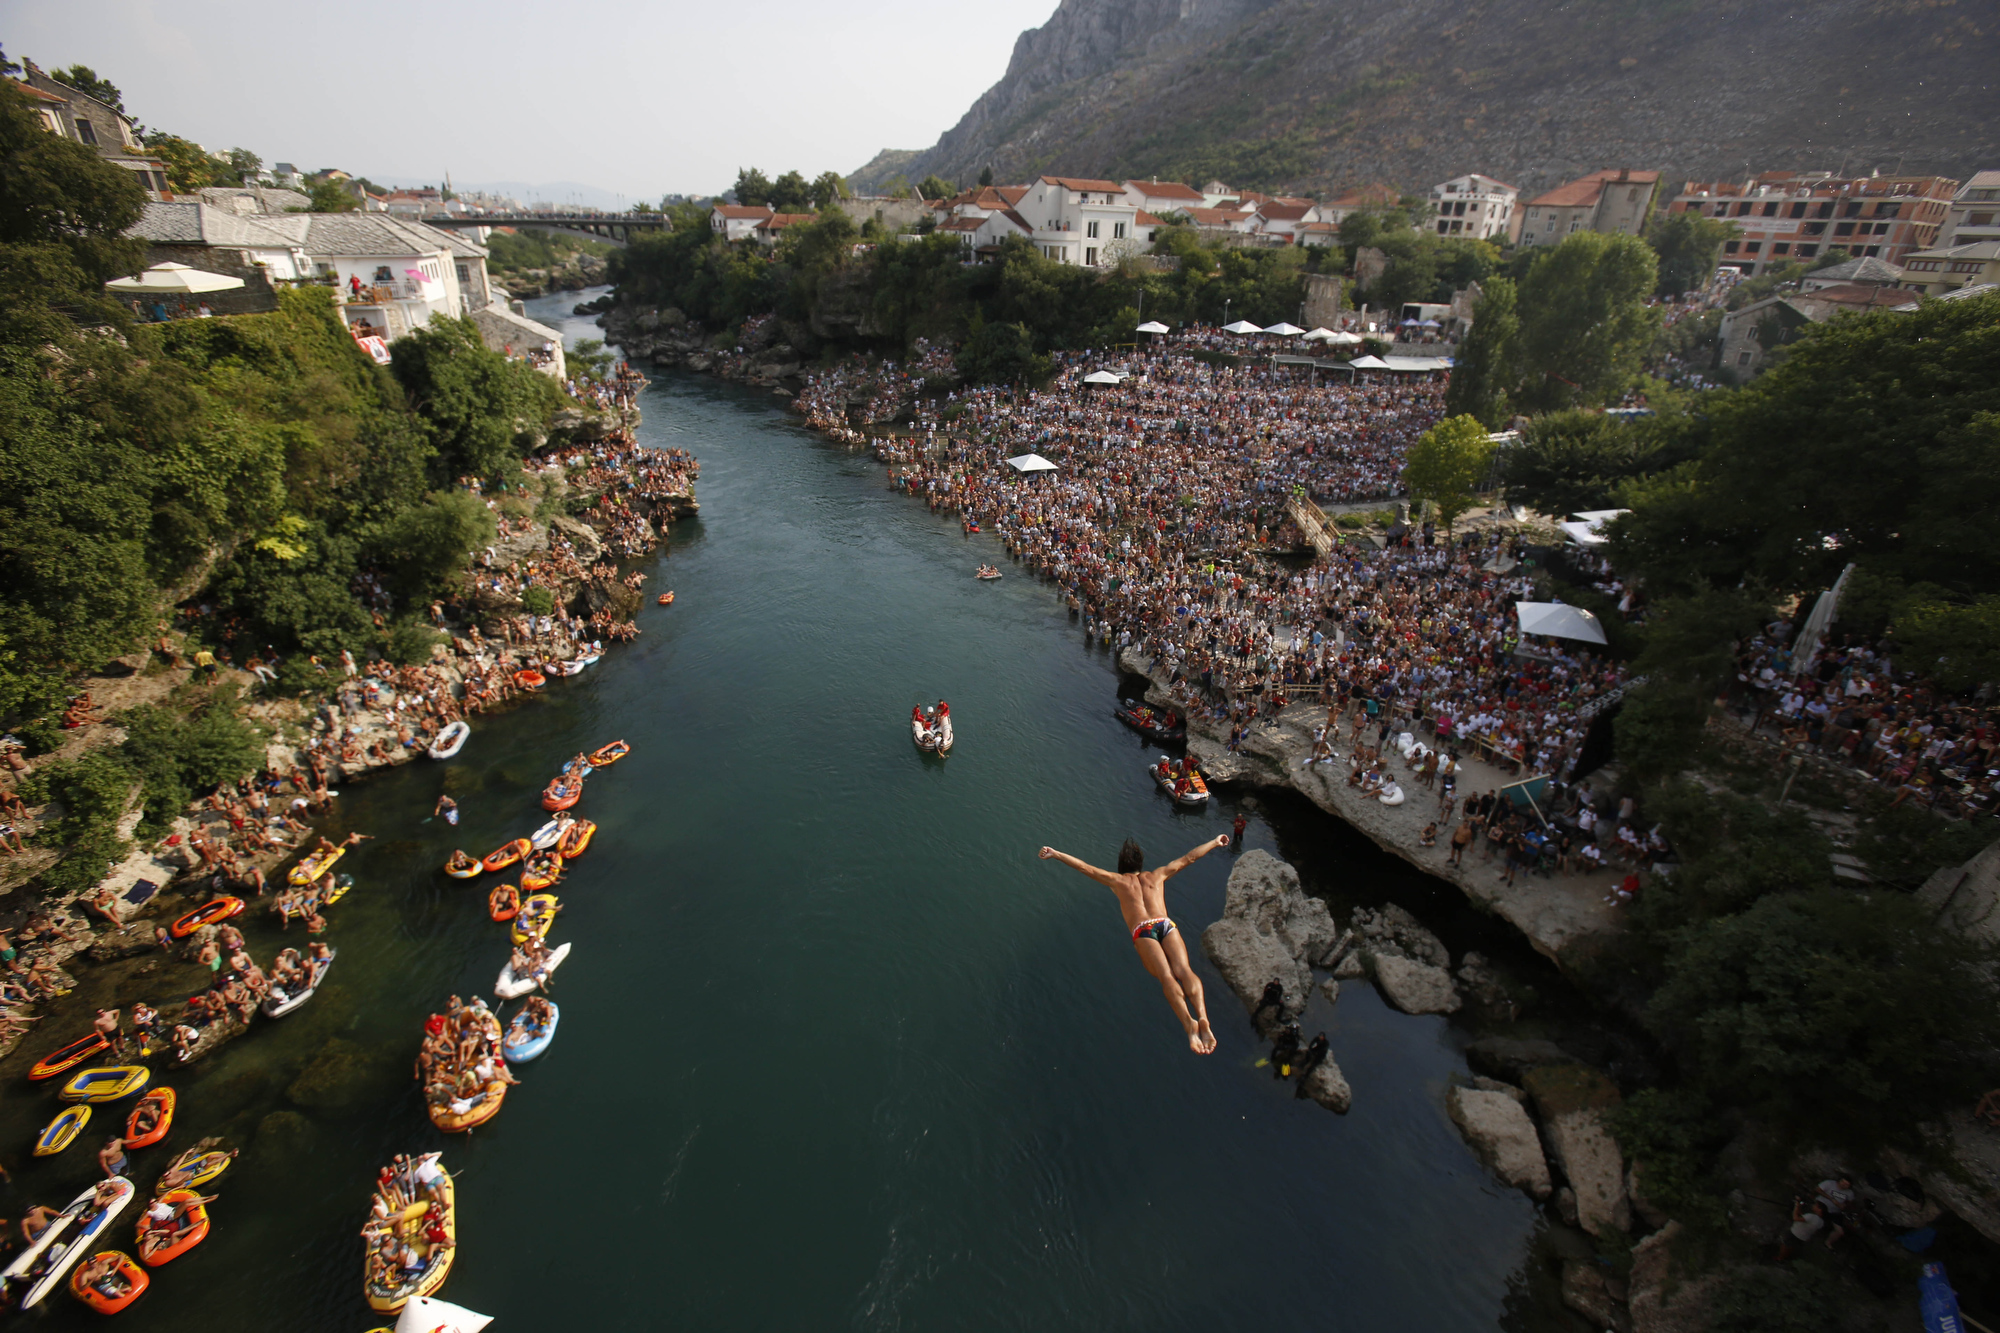 Cliff diving obama and clinton golf netball championship august 15 - Red bull high dive ...